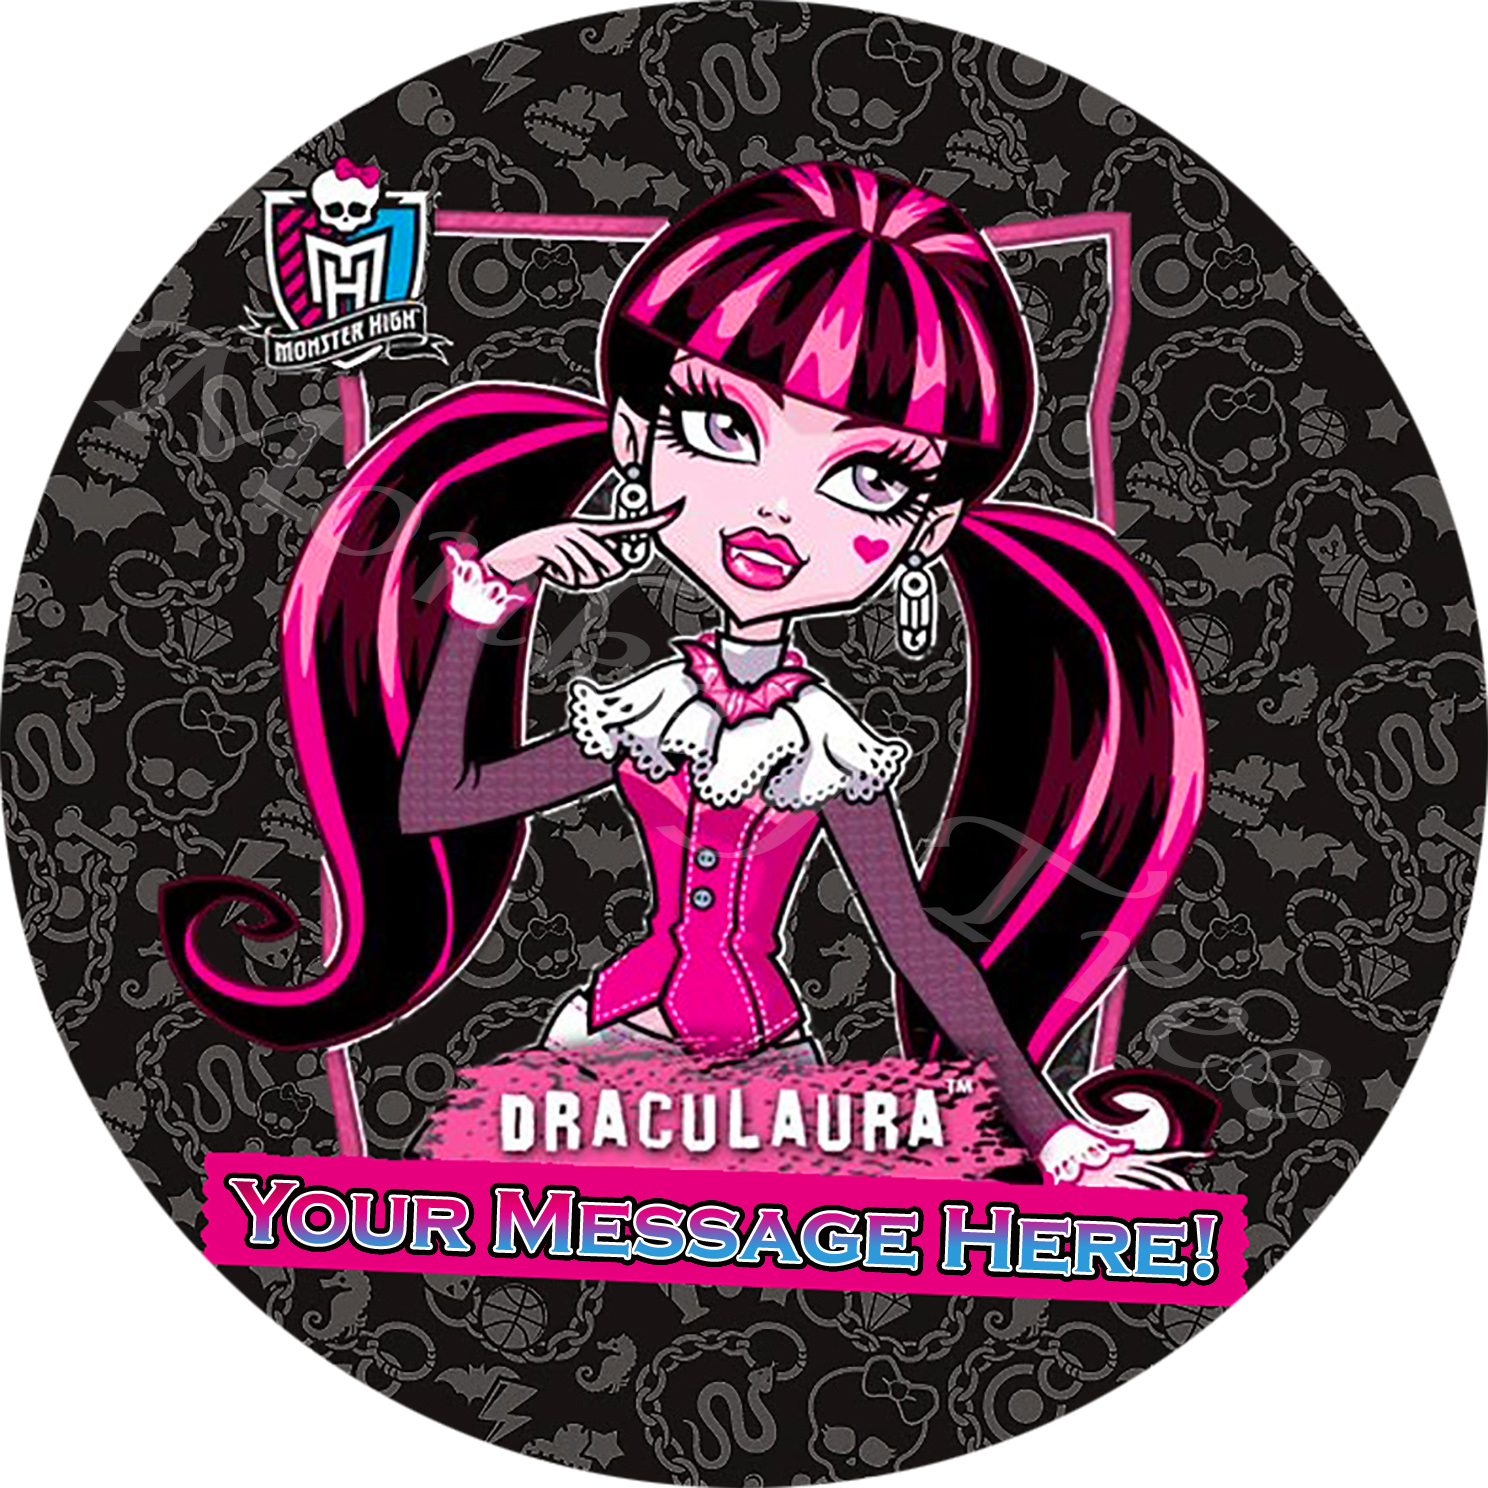 Uncategorized Monster High Draculaura monster high draculaura personalised edible cake image the music disco fondant cake